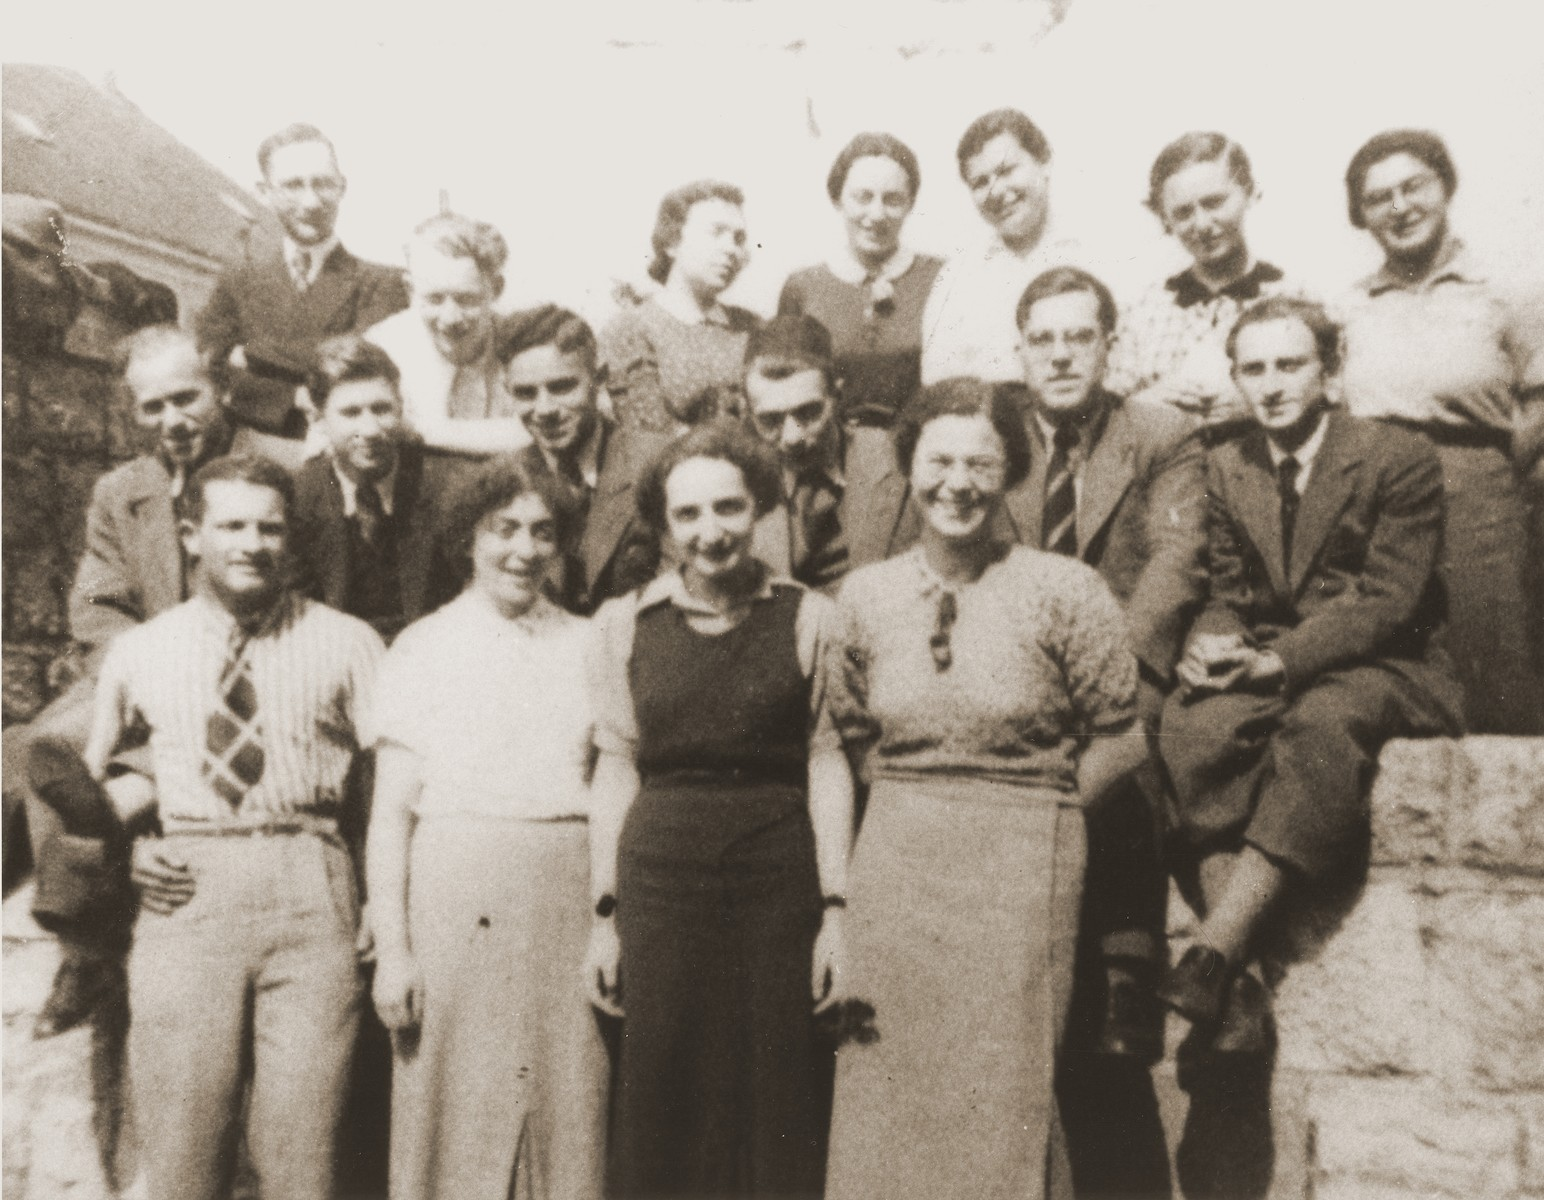 Graduating class of the Wuerzburg Jewish teachers seminary shortly before it was closed down on Kristallnacht.    Pictured in the front row from left to right are Spier, unknown, Molly Haberman, and Toni Pachtmann.  In the middle row from left to right are, unknown, Herbert Aron, Albert Schild, Rabbi Naftali Carlebach, Jacob Breuer (son of the rabbi and Gerd Zwienicki.  In the top row, second from the right, is Kathe Weiss.